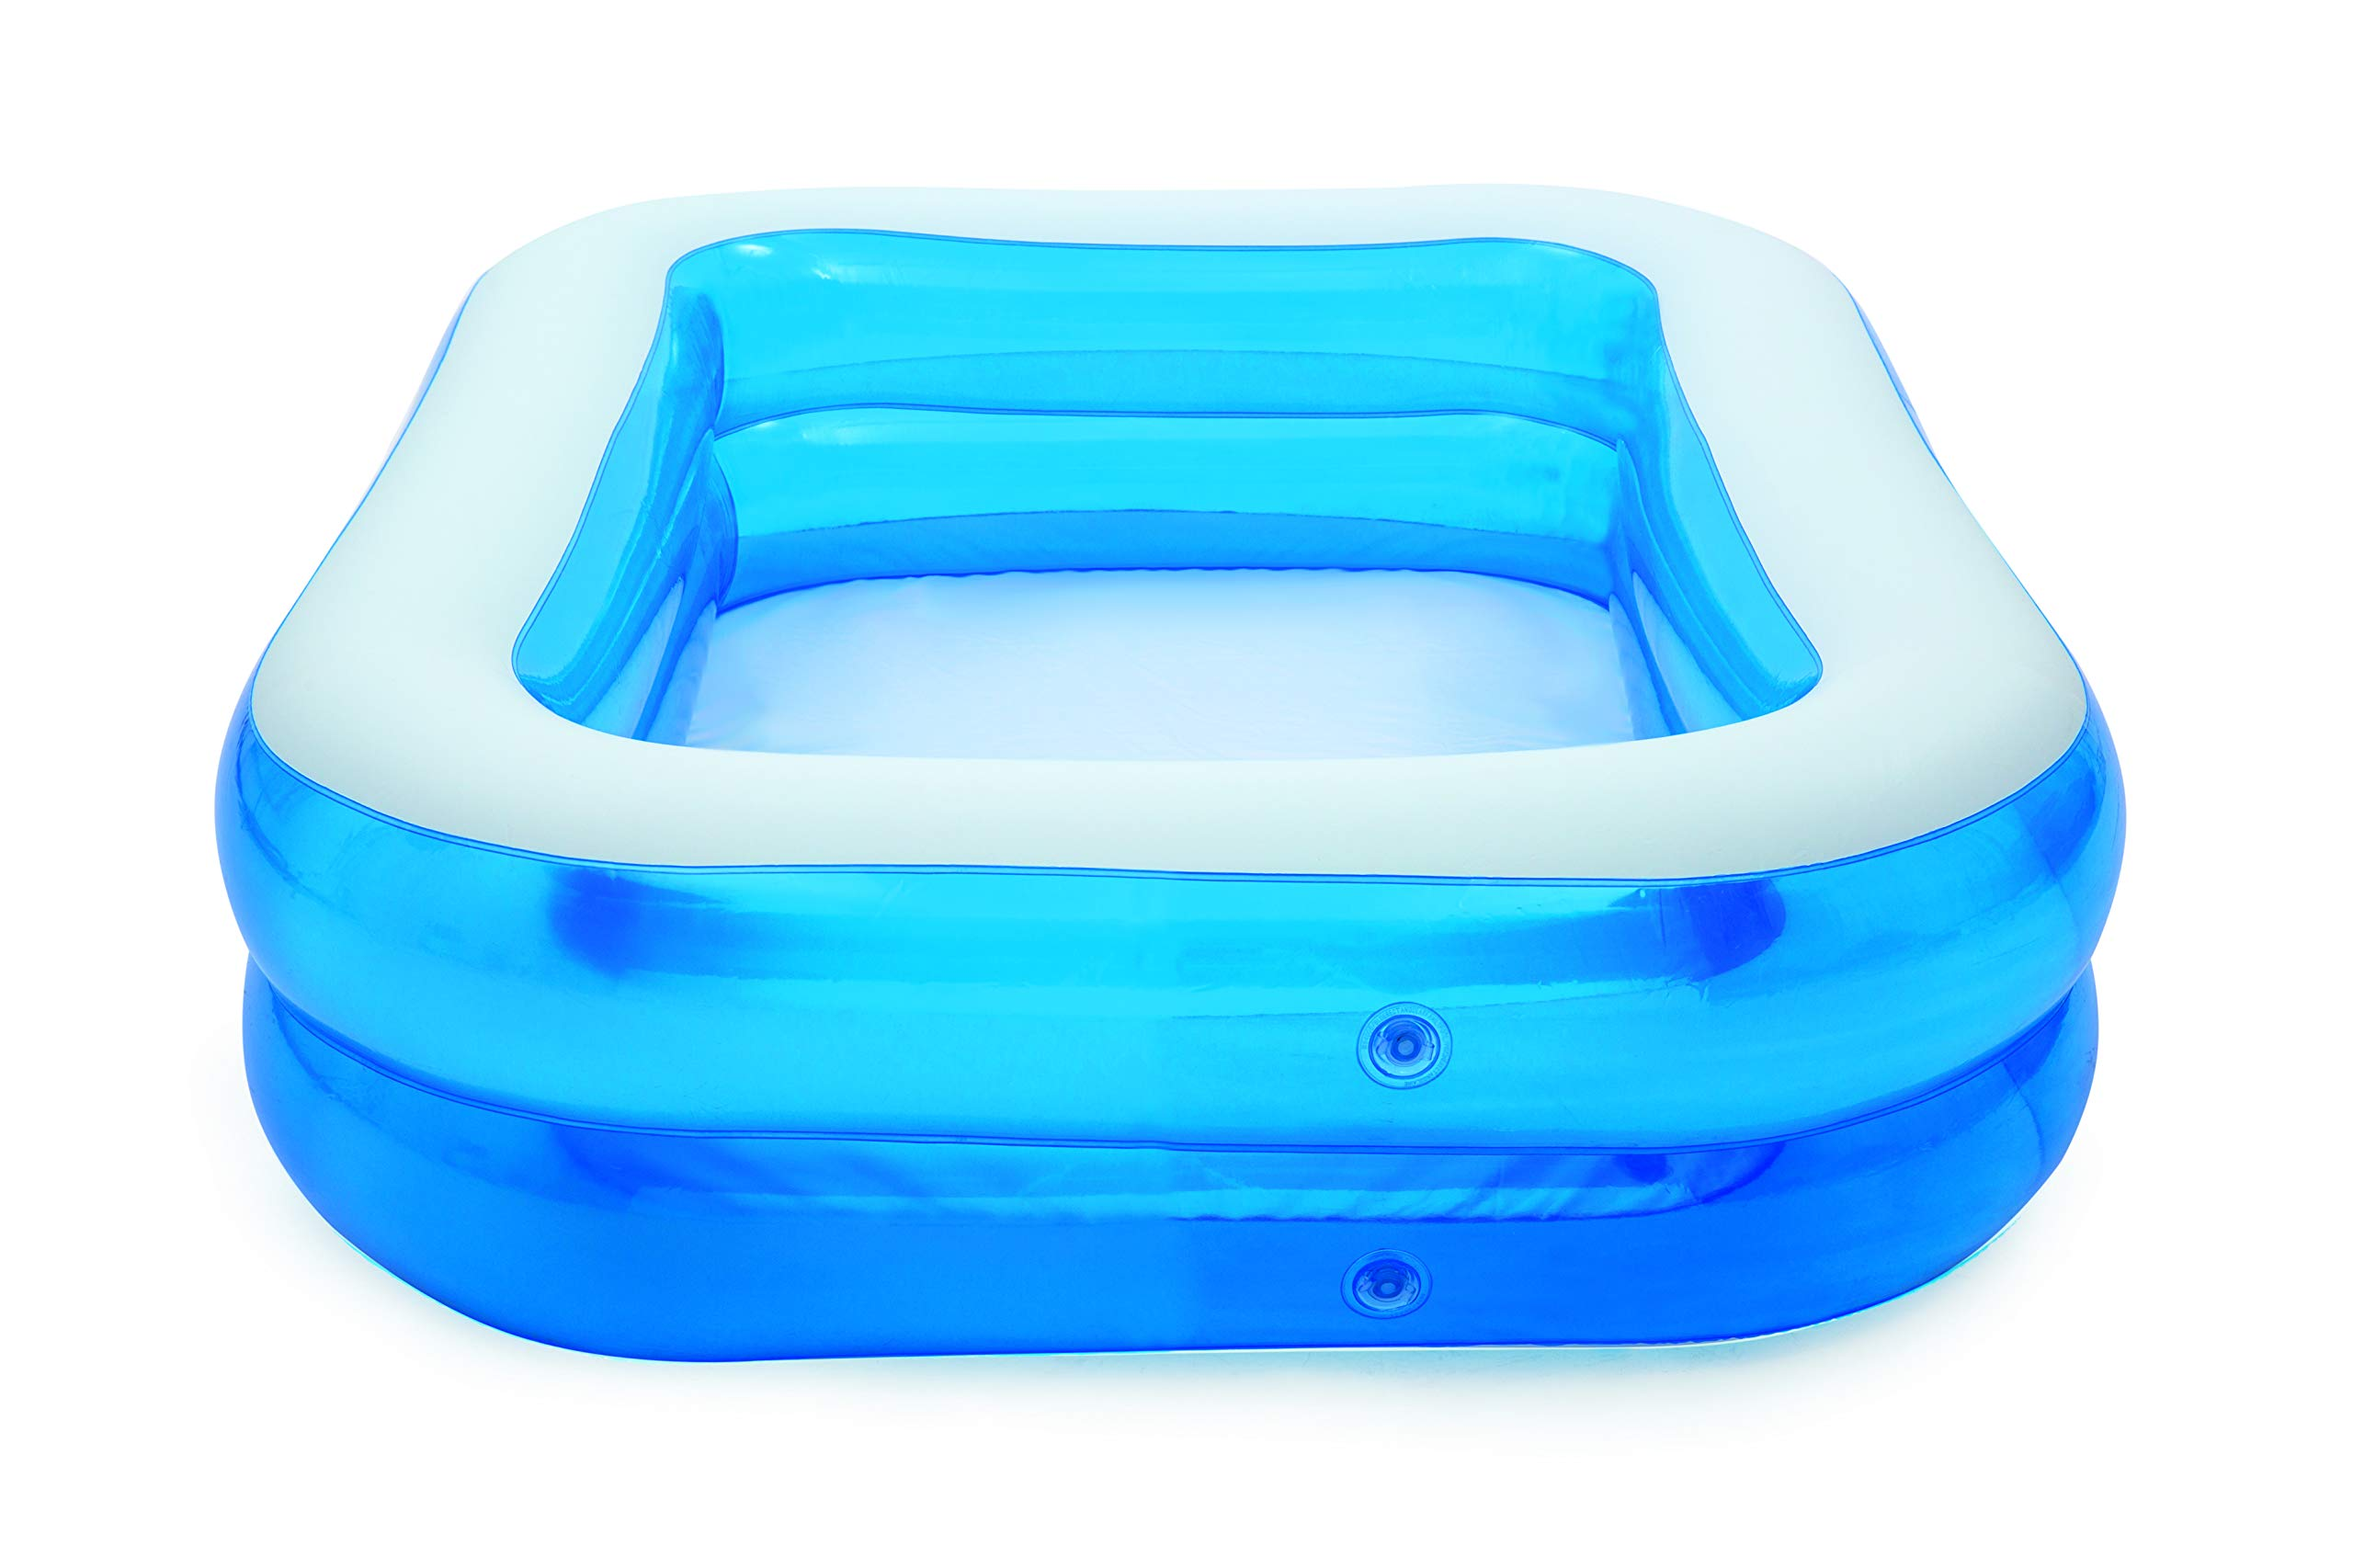 Bestway 54005 - Piscina Hinchable Infantil Blue Rectangular 201x150x51 cm: Bestway 79 x 59 x 20-inches Rectangular Family Pool: Amazon.es: Coche y moto